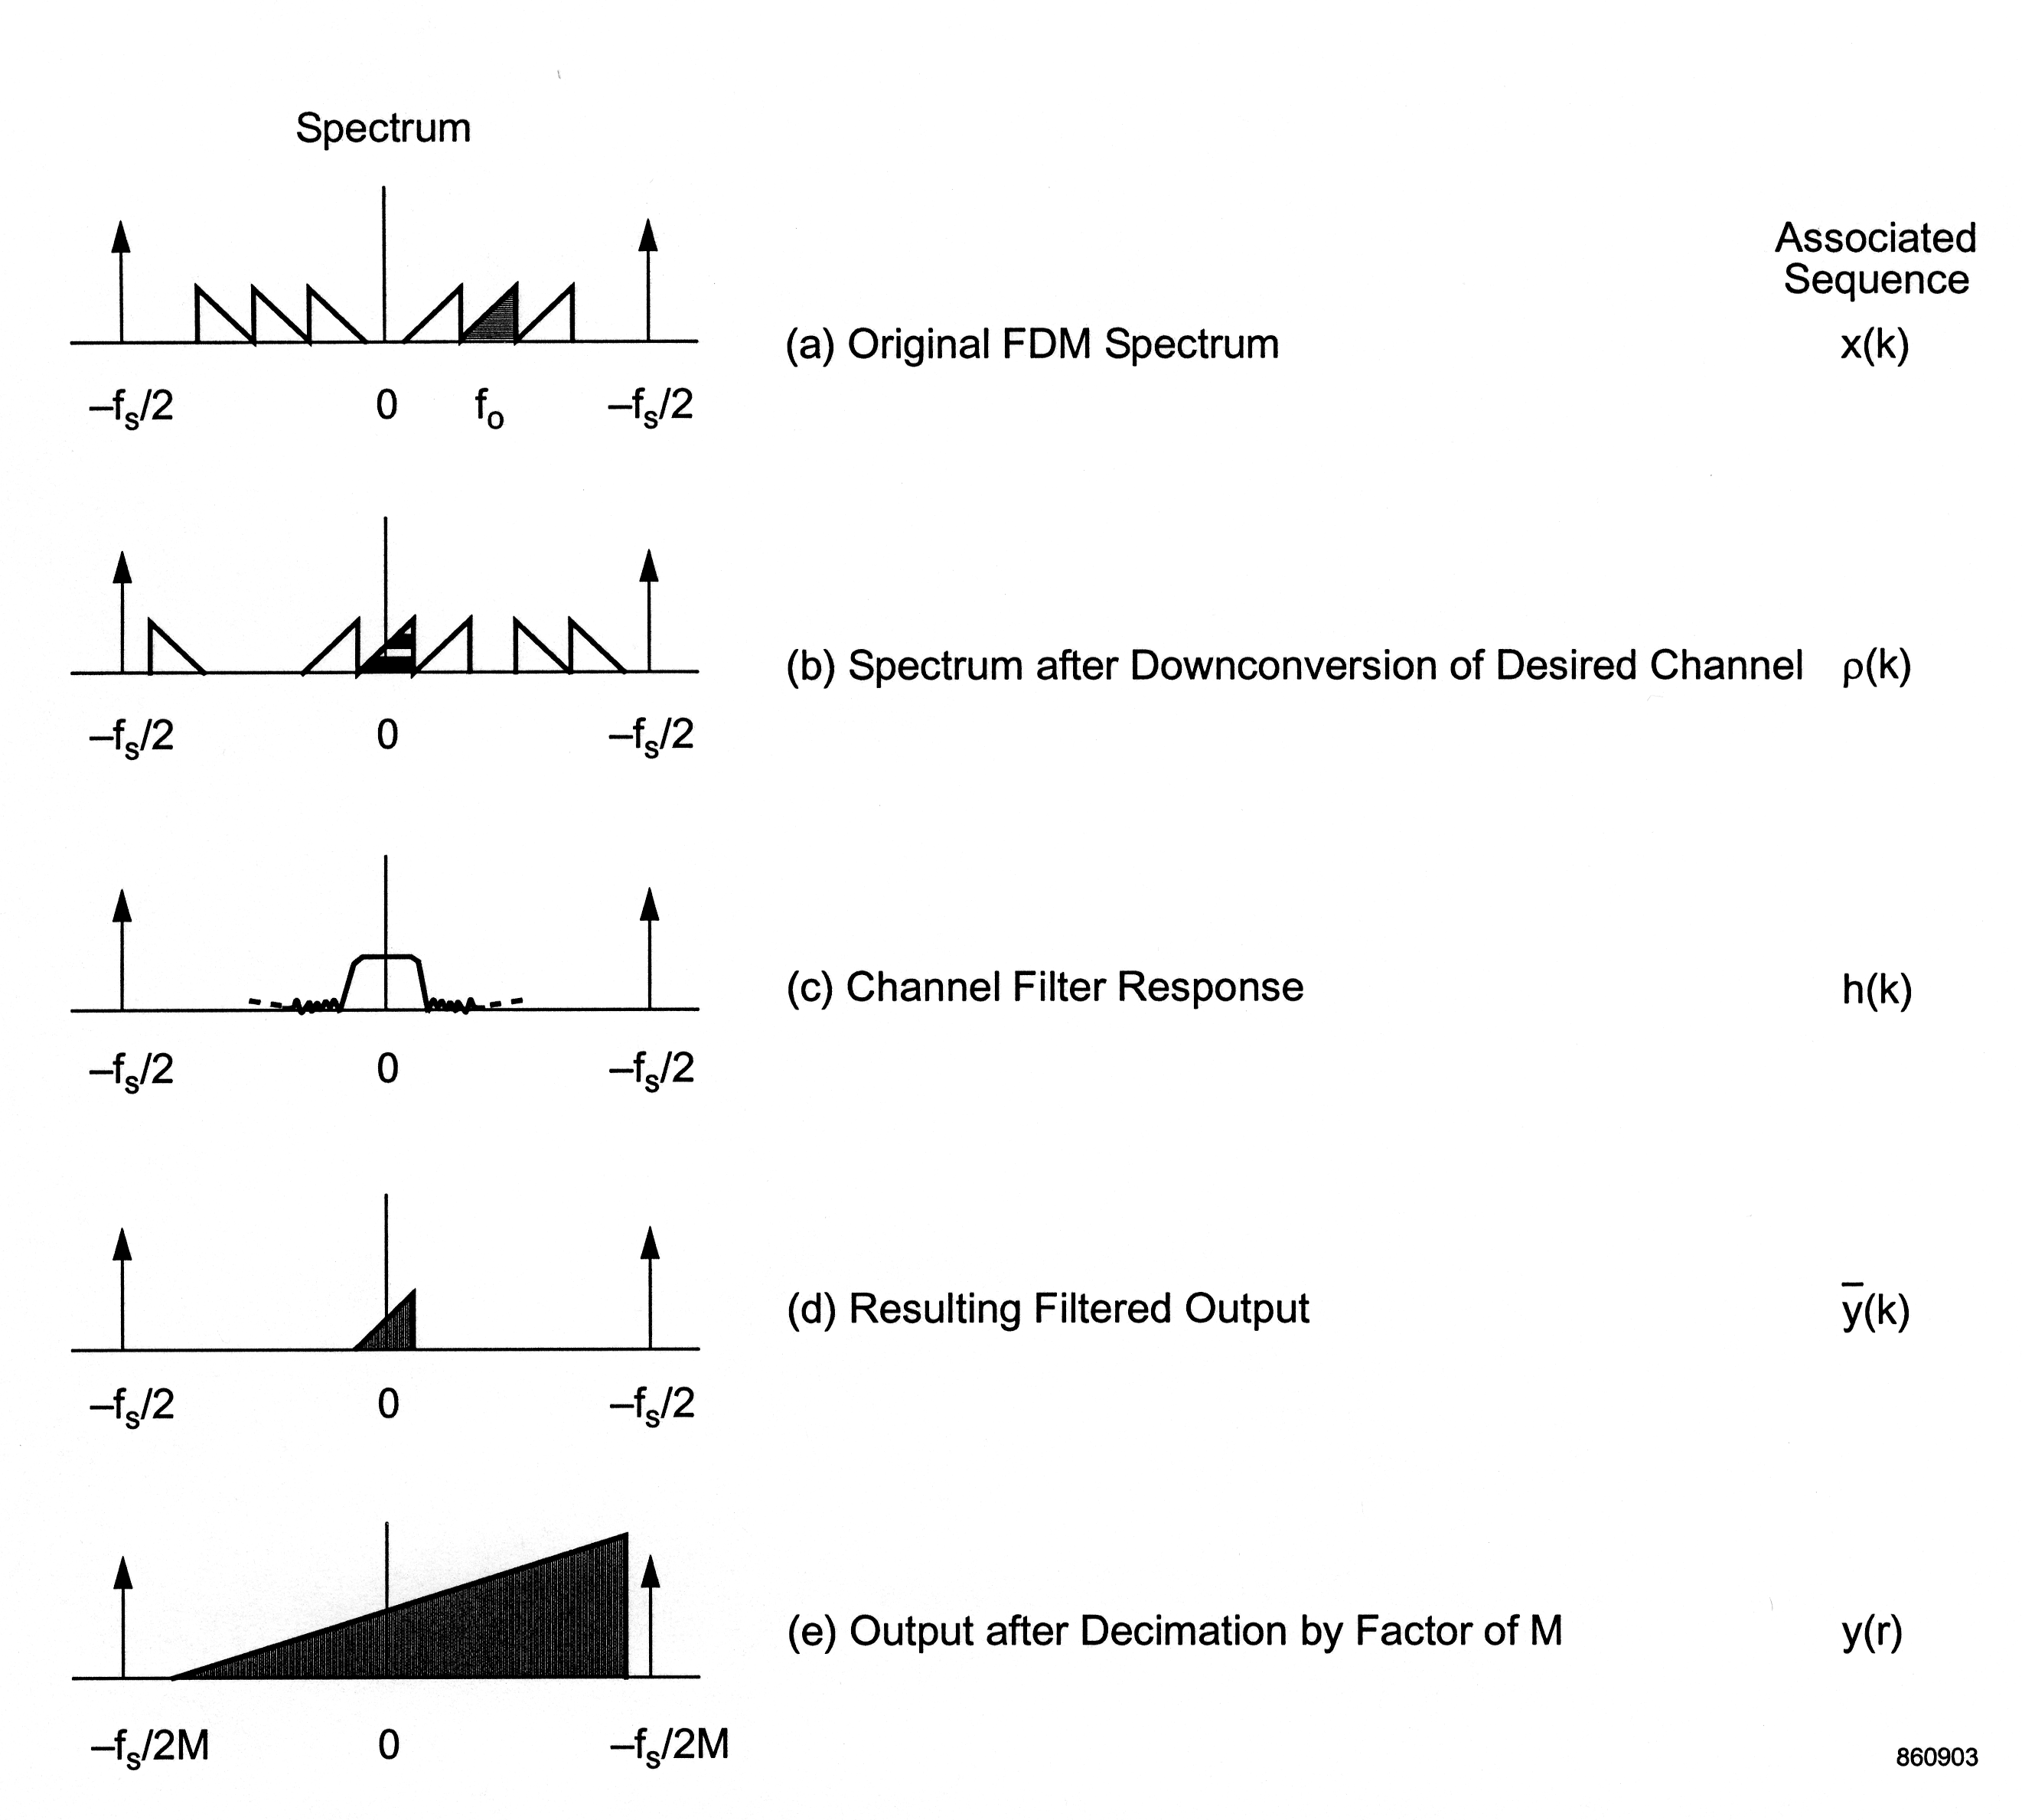 Figure two is a five-part diagram of graphs with descriptions. Each graph plots f_0 on the horizontal axis, only displaying the first and second quadrants, and the horizontal axis ranges in value from -f_s/2 to f_s/2. The first graph, titled (a) Original FDM Spectrum, and described as the associated sequence x(k), is a graph of six congruent right triangles with bases on the horizontal axis. Three right triangles in the second quadrant face the center of the graph with their right angles on the left. Three right triangles in the first quadrant face the center of the graph with their right angles on the right. The center triangle in the first quadrant is shaded black. The second graph, titled (b) Spectrum after Downconversion of Desired Channel, and described as the associated sequence ρ(k), is a graph of six congruent right triangles with bases on the horizontal axis, but unlike (a), they are scattered in a less symmetric pattern. Far on the left is the first right triangle, with its right angle on the left. Just before, just after, and on the vertical axis are the next three triangles, all facing to the right with their right angles on the right side. The center triangle in this series is shaded black. A final two triangles further to the right in the first quadrant face away from the vertical axis with their right angles on the left. The third graph, titled (c) Channel Filter response, and described as the associated sequence h(k), contains a short wavering graph with a flat peak centered on the vertical axis. The fourth graph, titled (d) Resulting Filtered Output, and described  as the associated sequence y-bar(k), contains one small black right triangle centered at the origin with its right angle on the right side. The fifth graph, titled (e) Output after Decimation by Factor of M, and described as the associated sequence y(r), contains a large shaded right triangle with a base approximately twice as long as its height, with its base centered in the graph at the vertical axis.